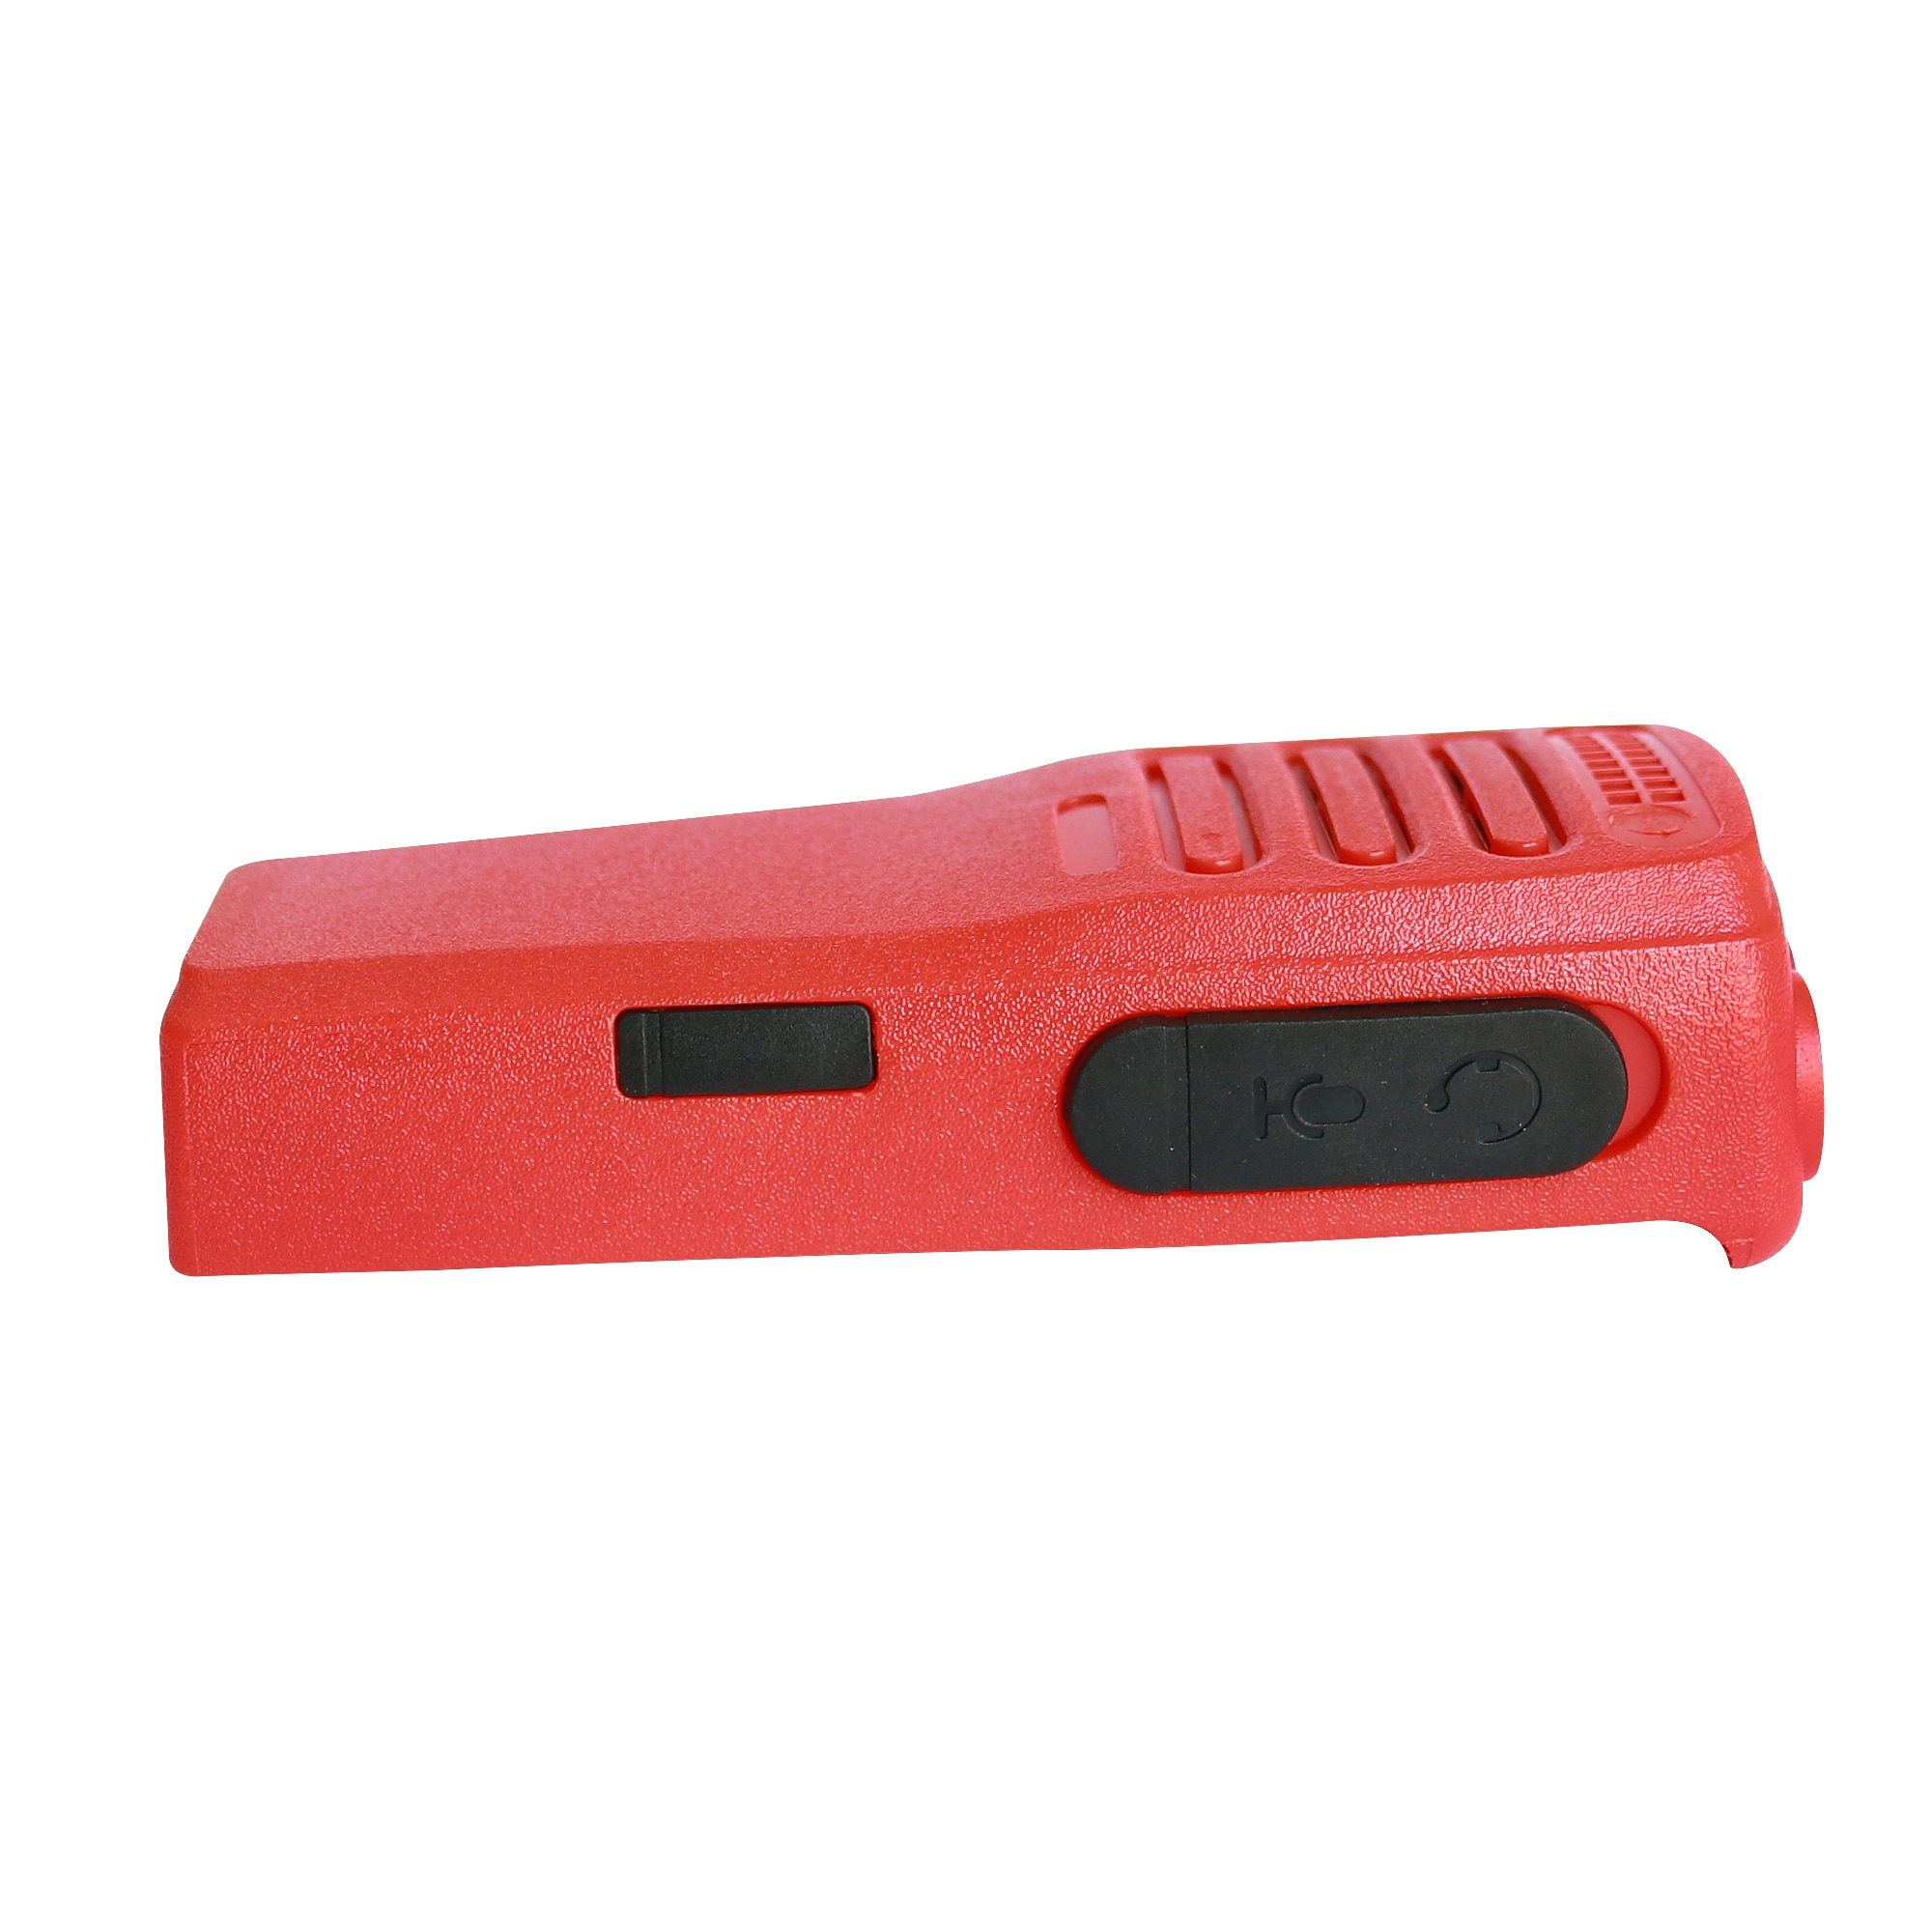 Ha044f6bce40644be869110590675cc9cB - Red Walkie Talkie Replacement Repair Case Housing Cover for Motorola CP200D DEP450 Portable Two Way Radio